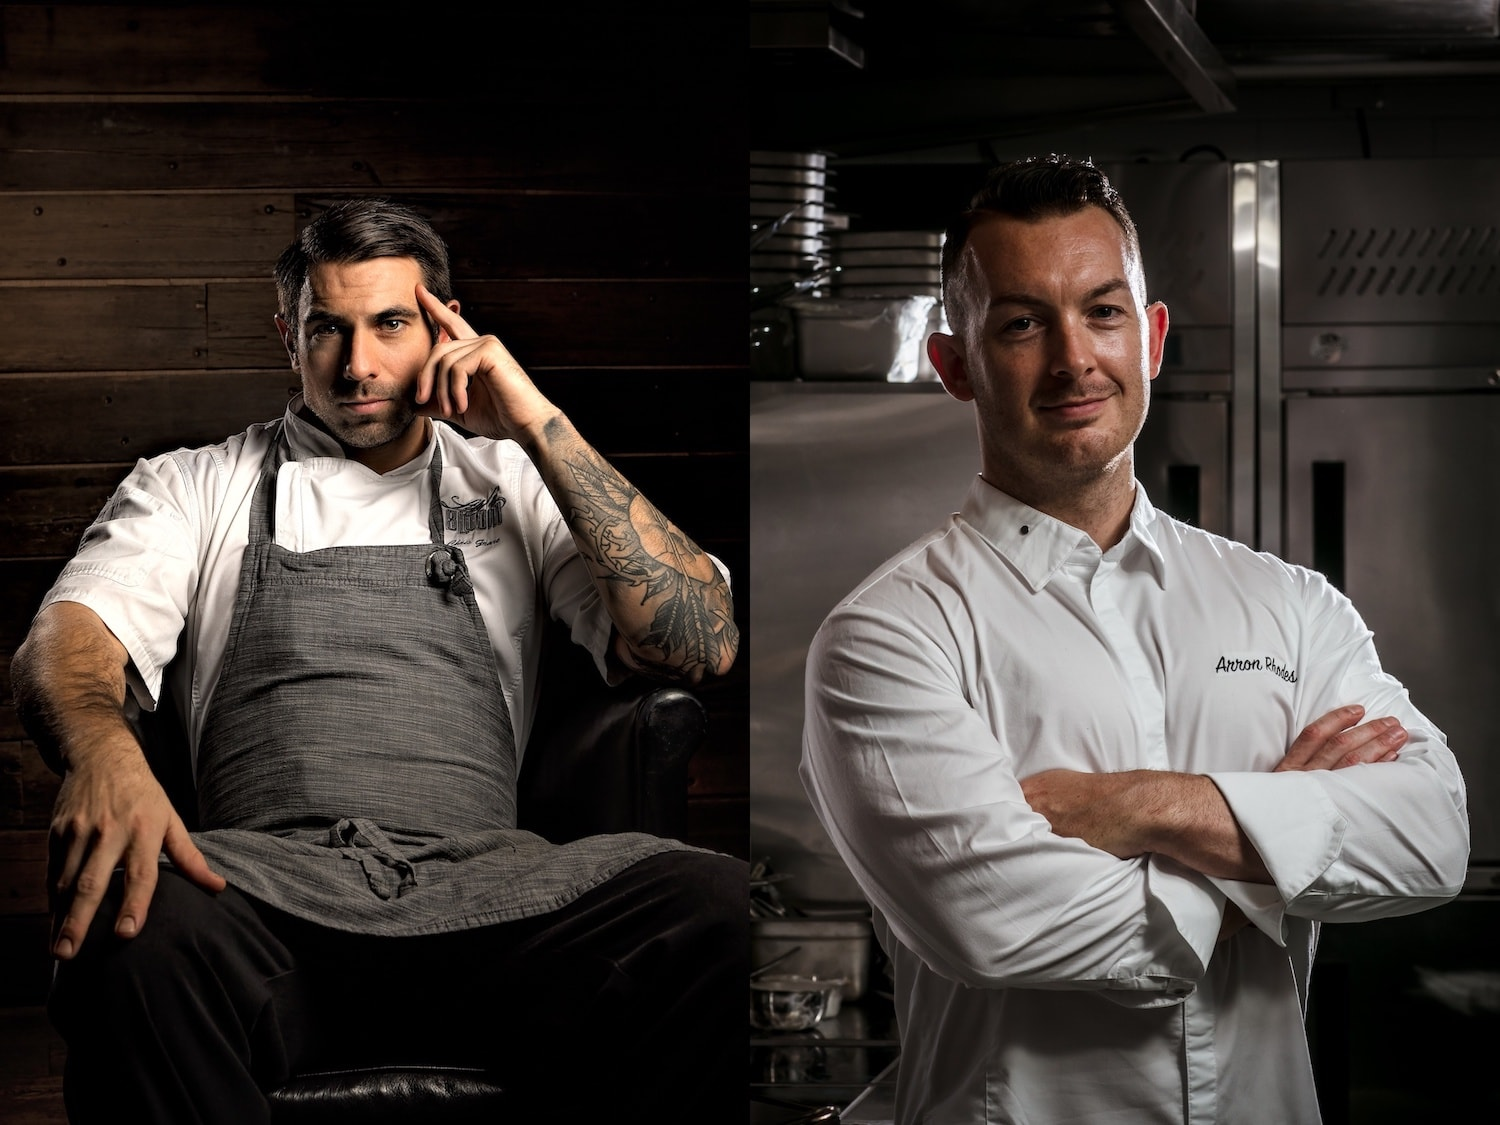 Kinship, by chefs Chris Grare and Arron Rhodes, will land in SoHo this summer